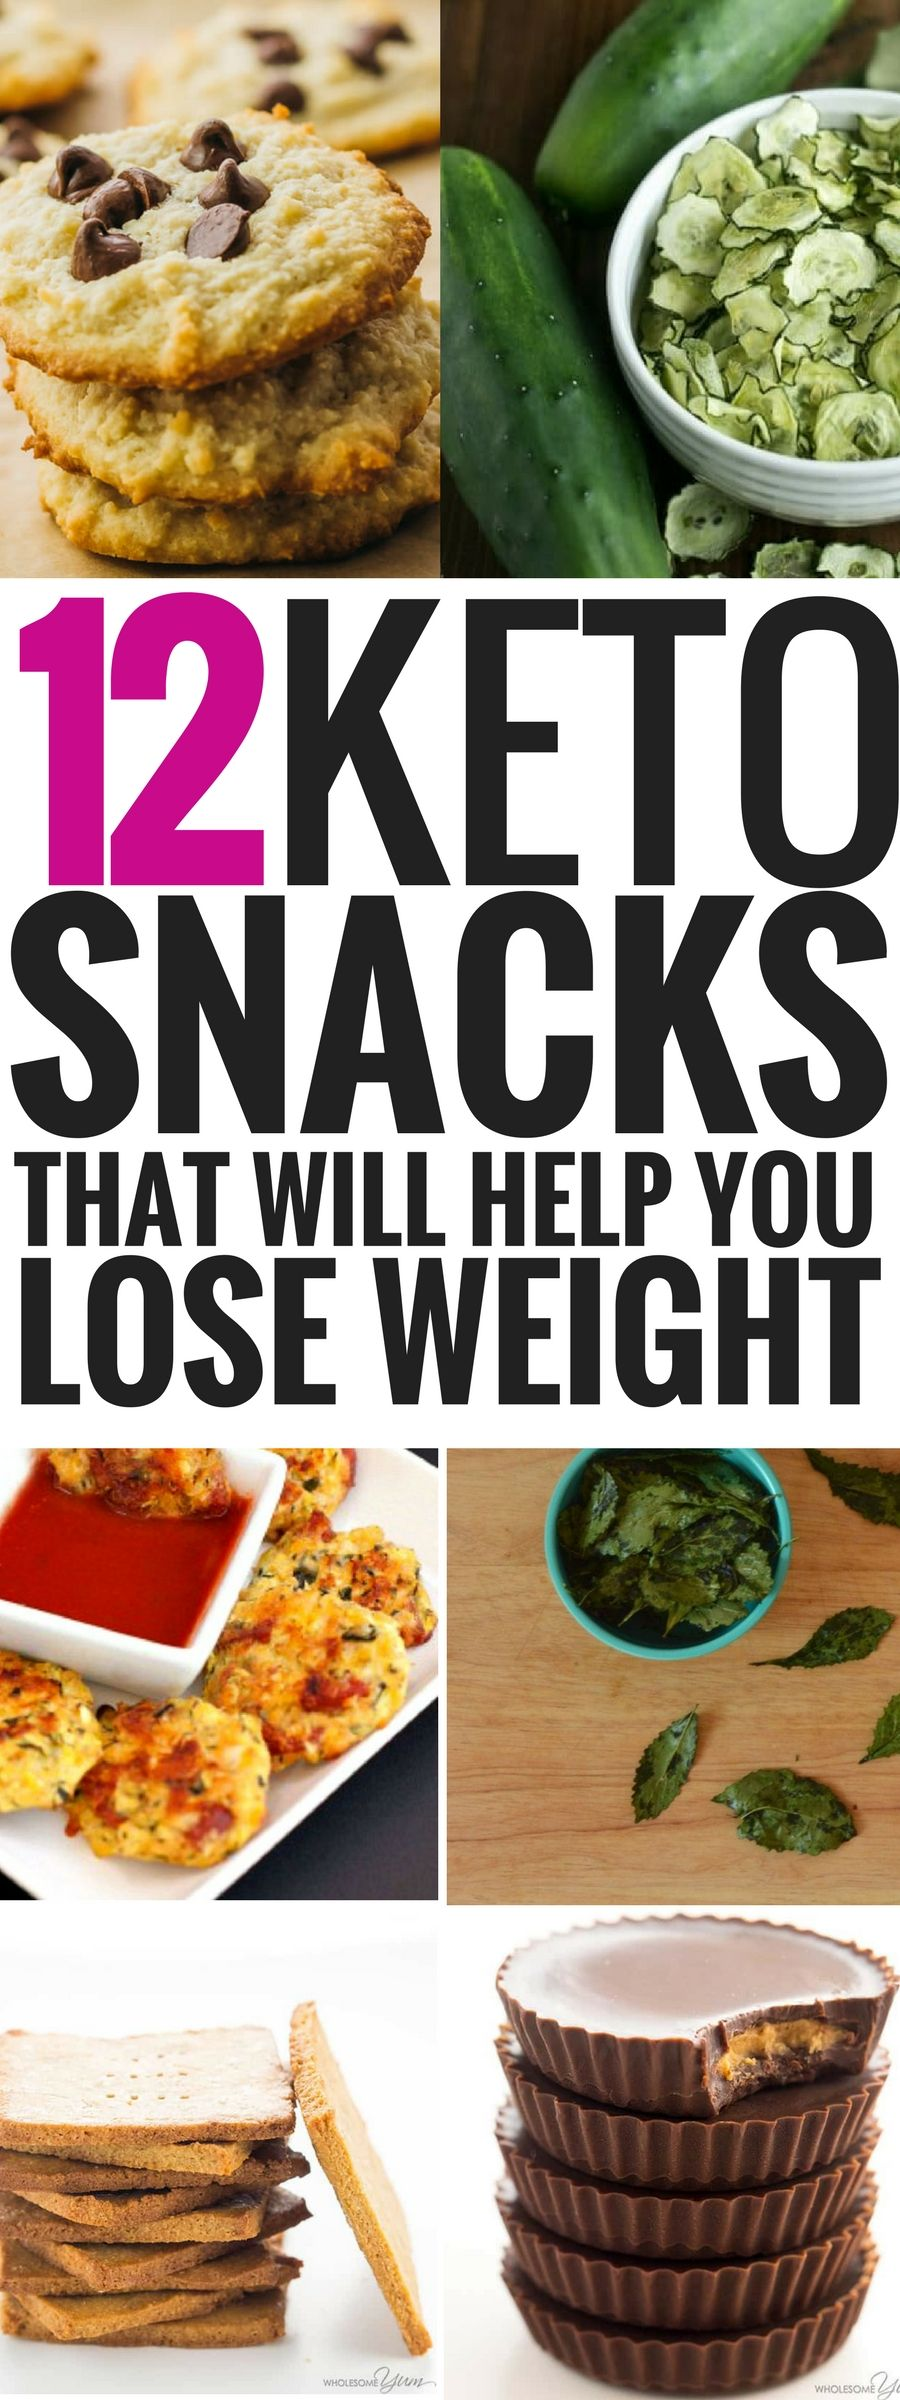 These 12 keto snacks are THE BEST! I'm so glad I found these AWESOME healthy snacks! Now I can snacks and still stay on top of my keto diet! Definitely repinning!